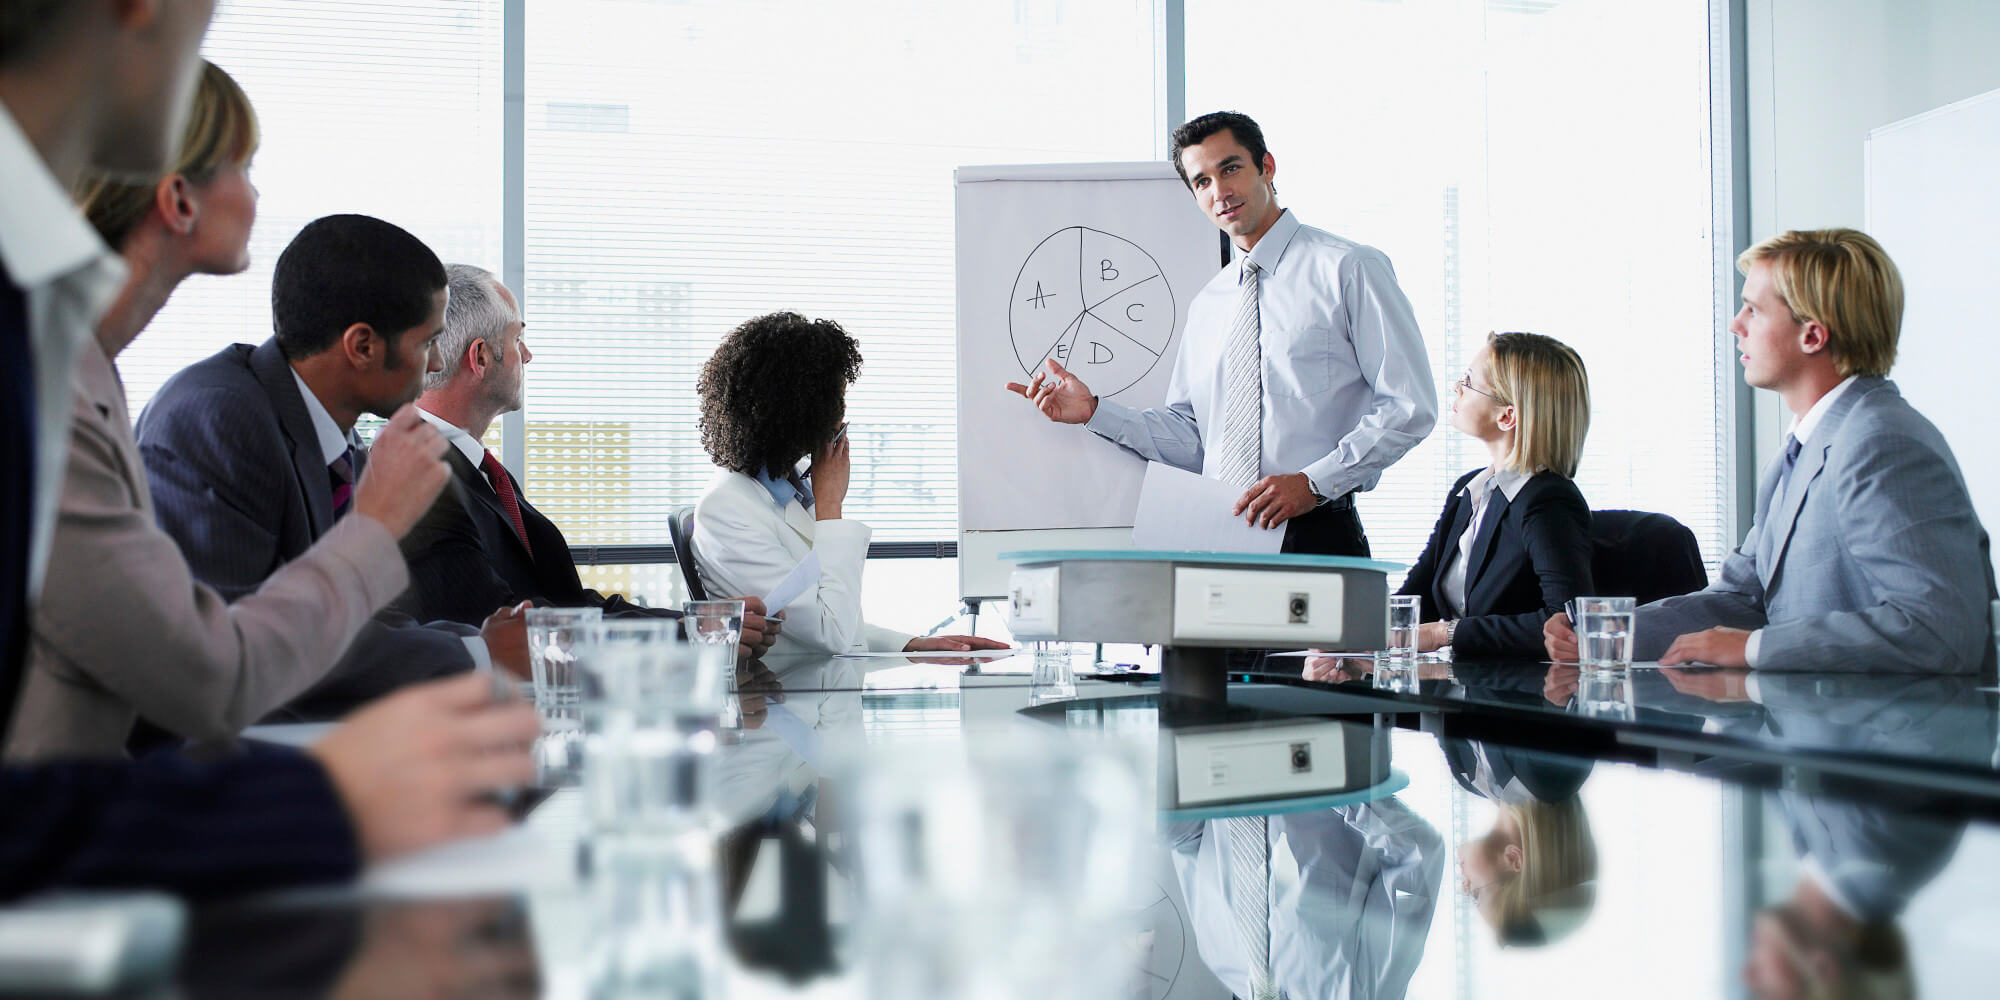 Make Good Career in Sales And Business Development